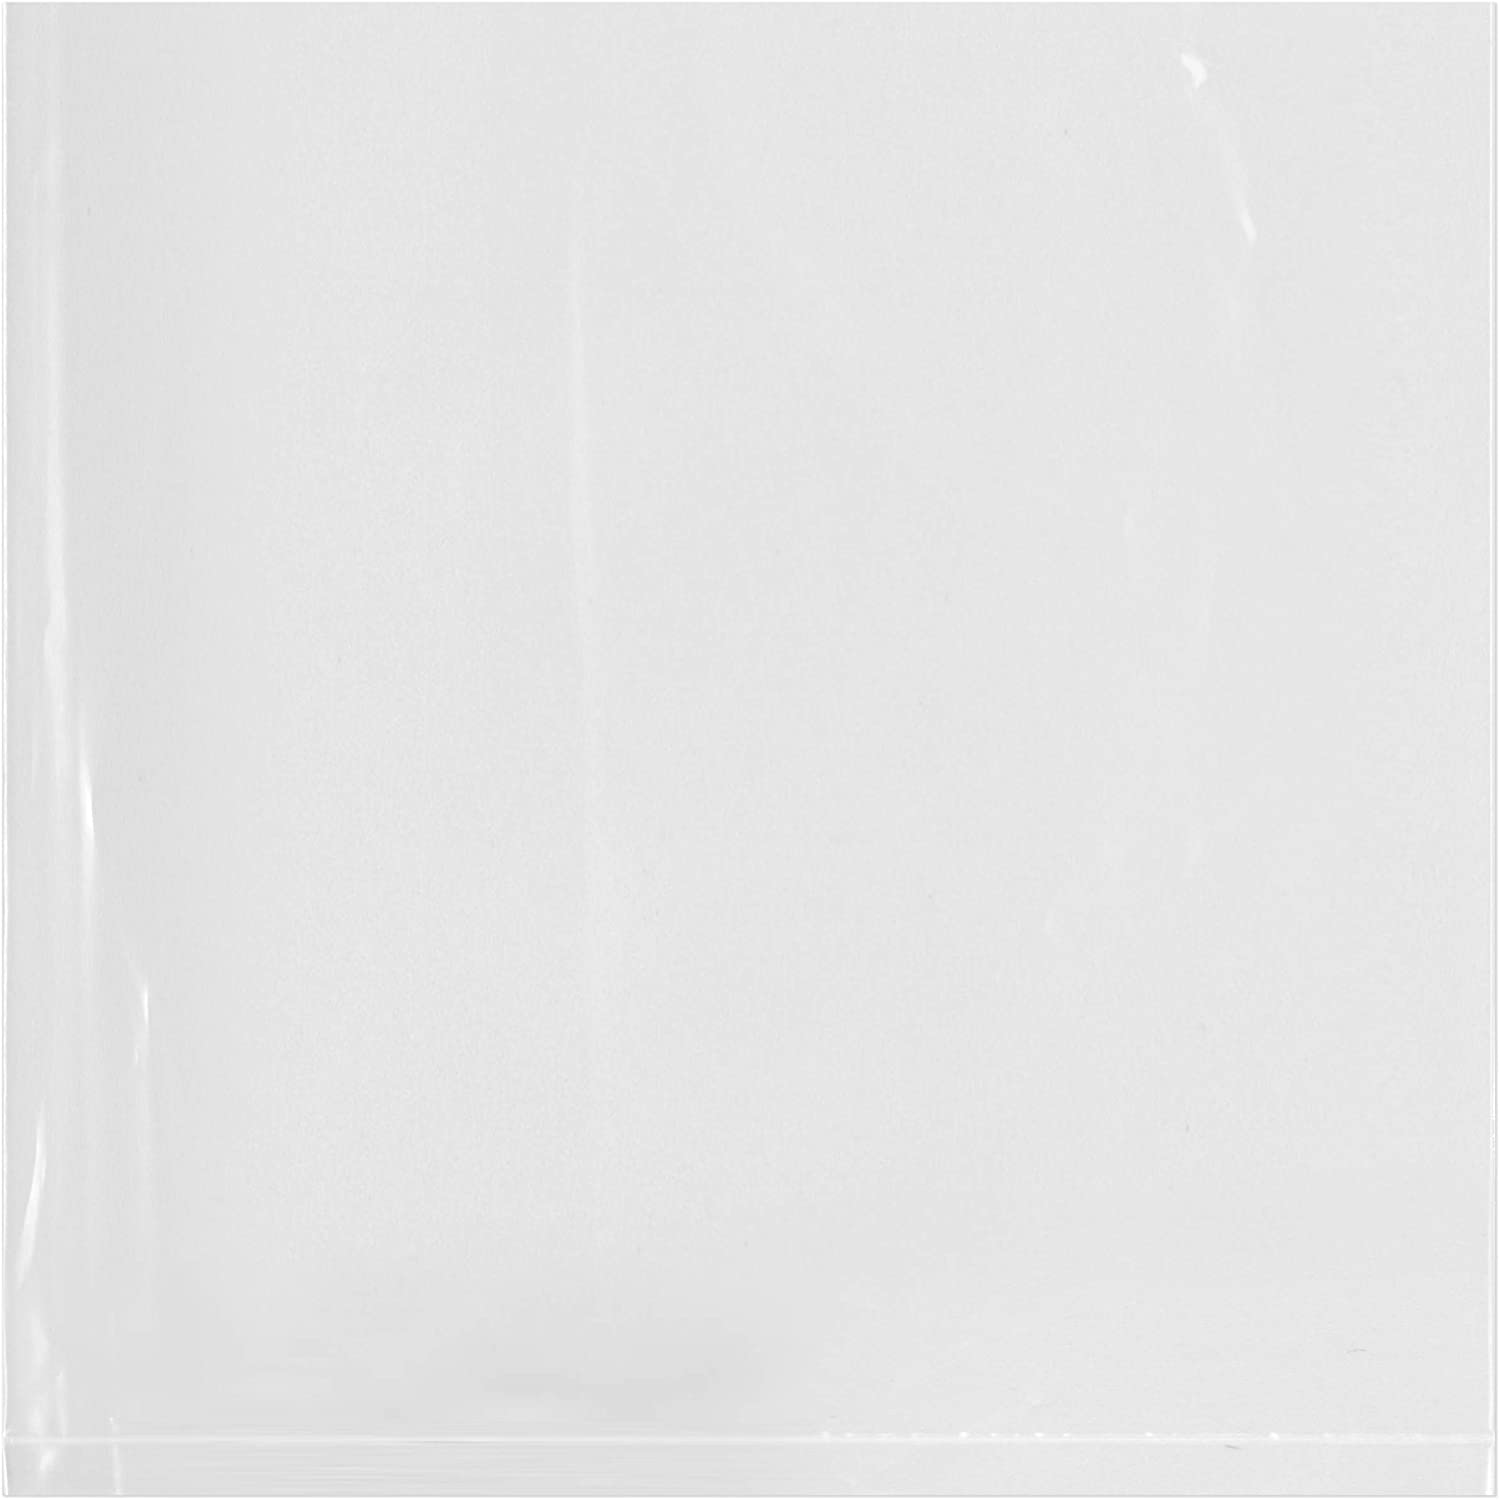 Plymor Flat Open Clear Plastic Poly Bags, 1.25 Mil, 6